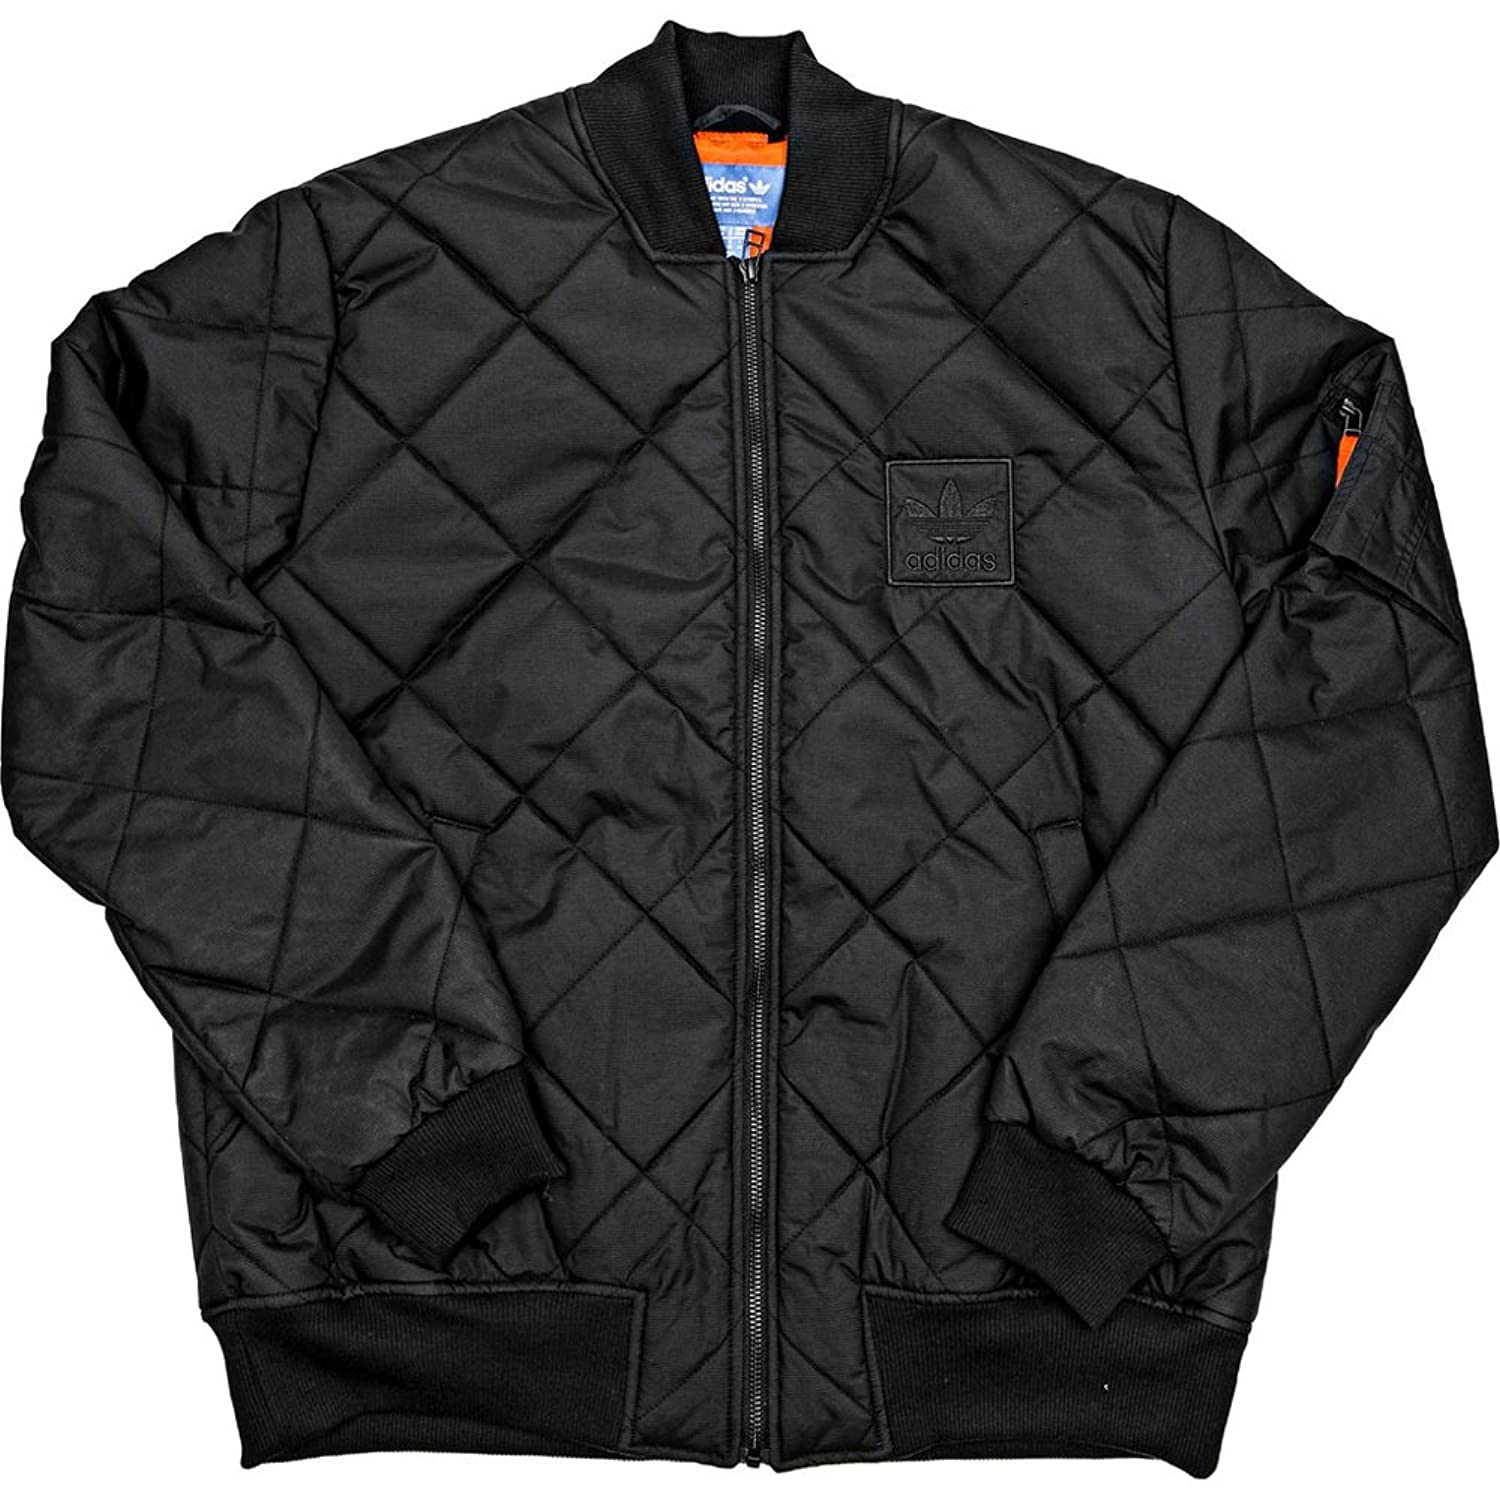 Buy cheap adidas camo track jacket >Up to OFF71% Discounts